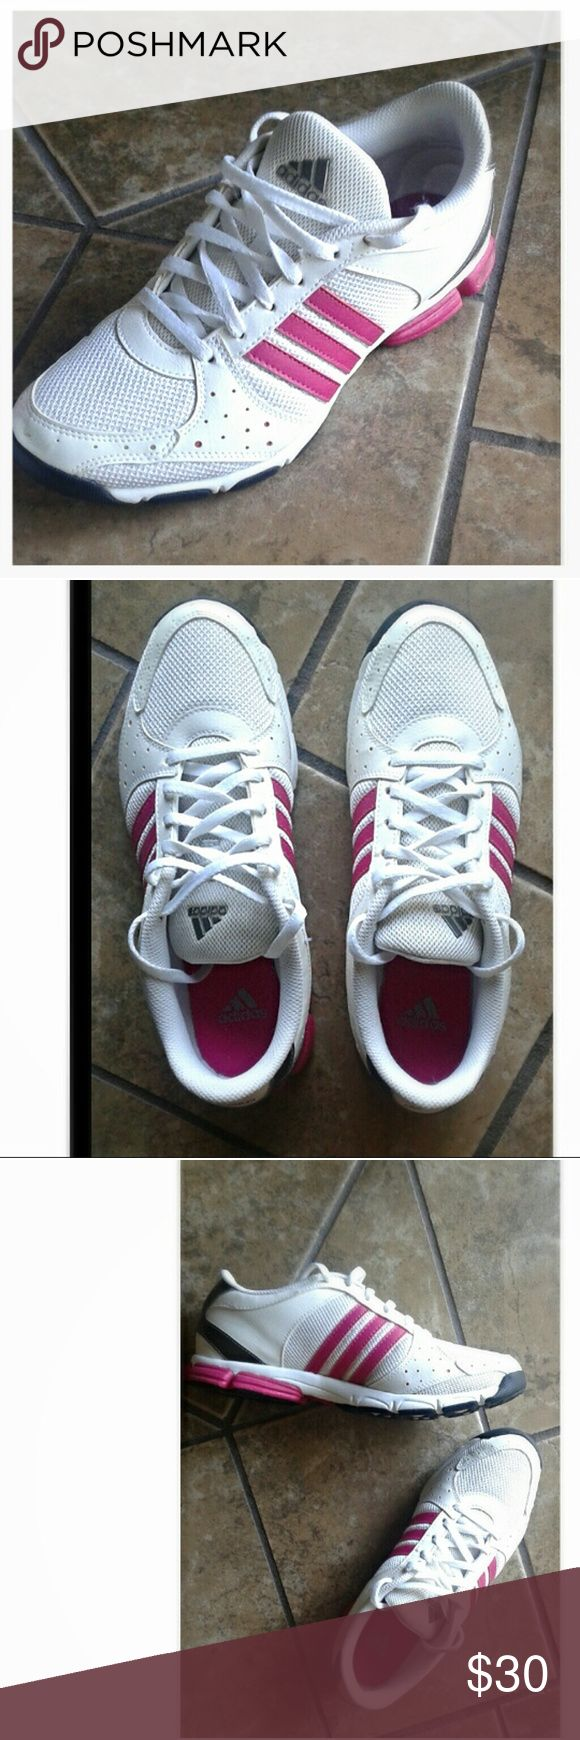 Adidas Core 55 #U42438 Excellent used condition. Performance Training shoes in White, Dark Pink, and Silvery Gray. Your perfect summer shoe. These say size 7 1/2, But I'd say they run a bit small and fit more Like a 7 with a narrow width, so I'll list it as such. adidas Shoes Sneakers